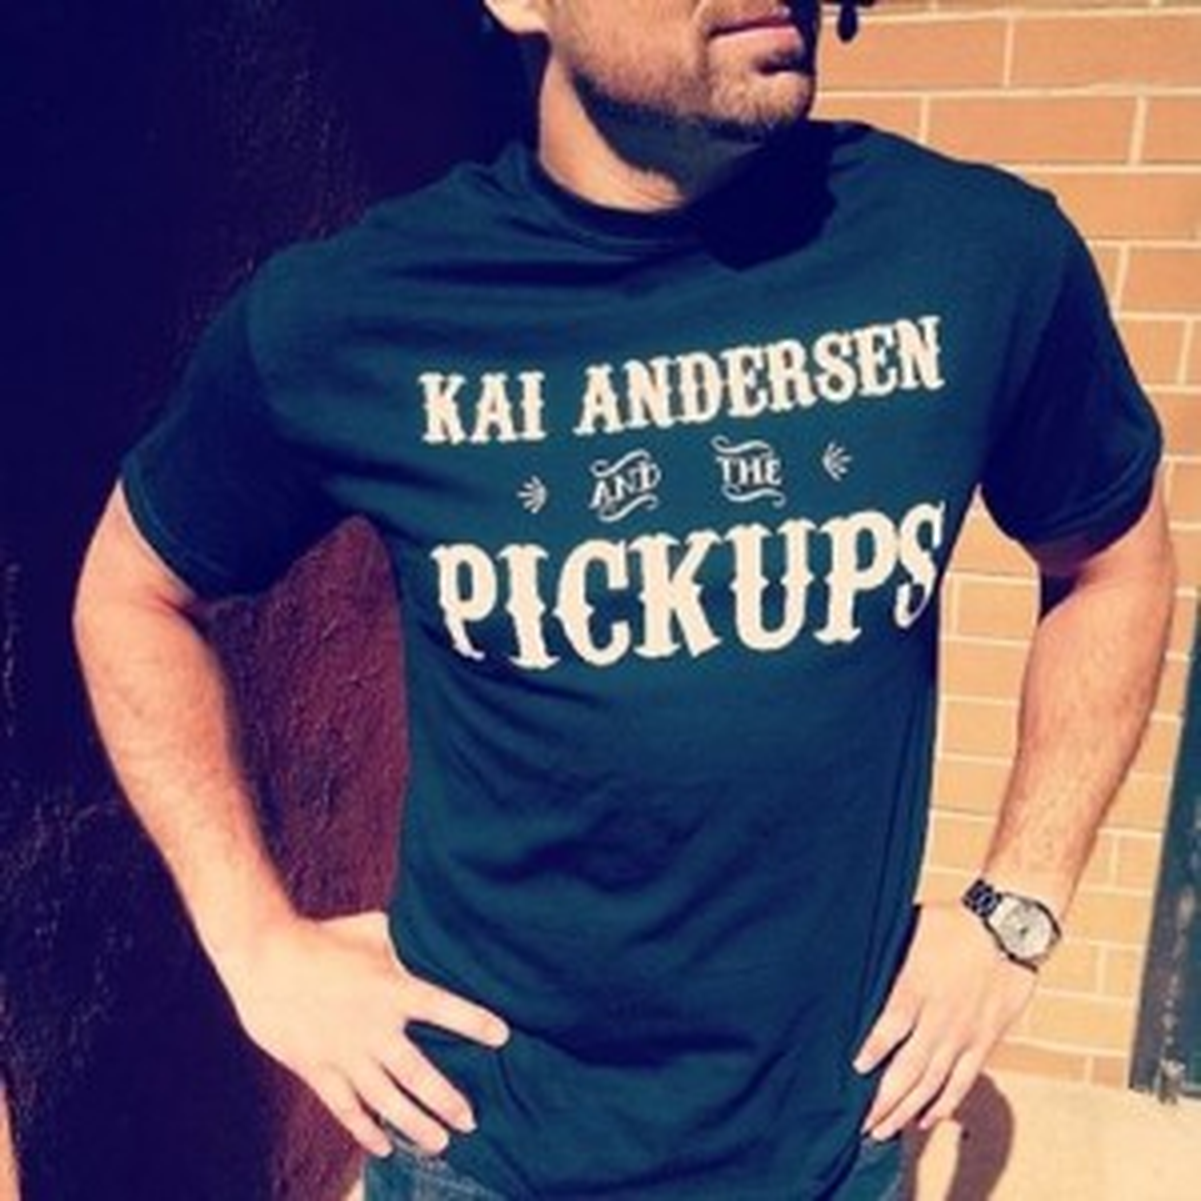 Kai Andersen & The Pickups